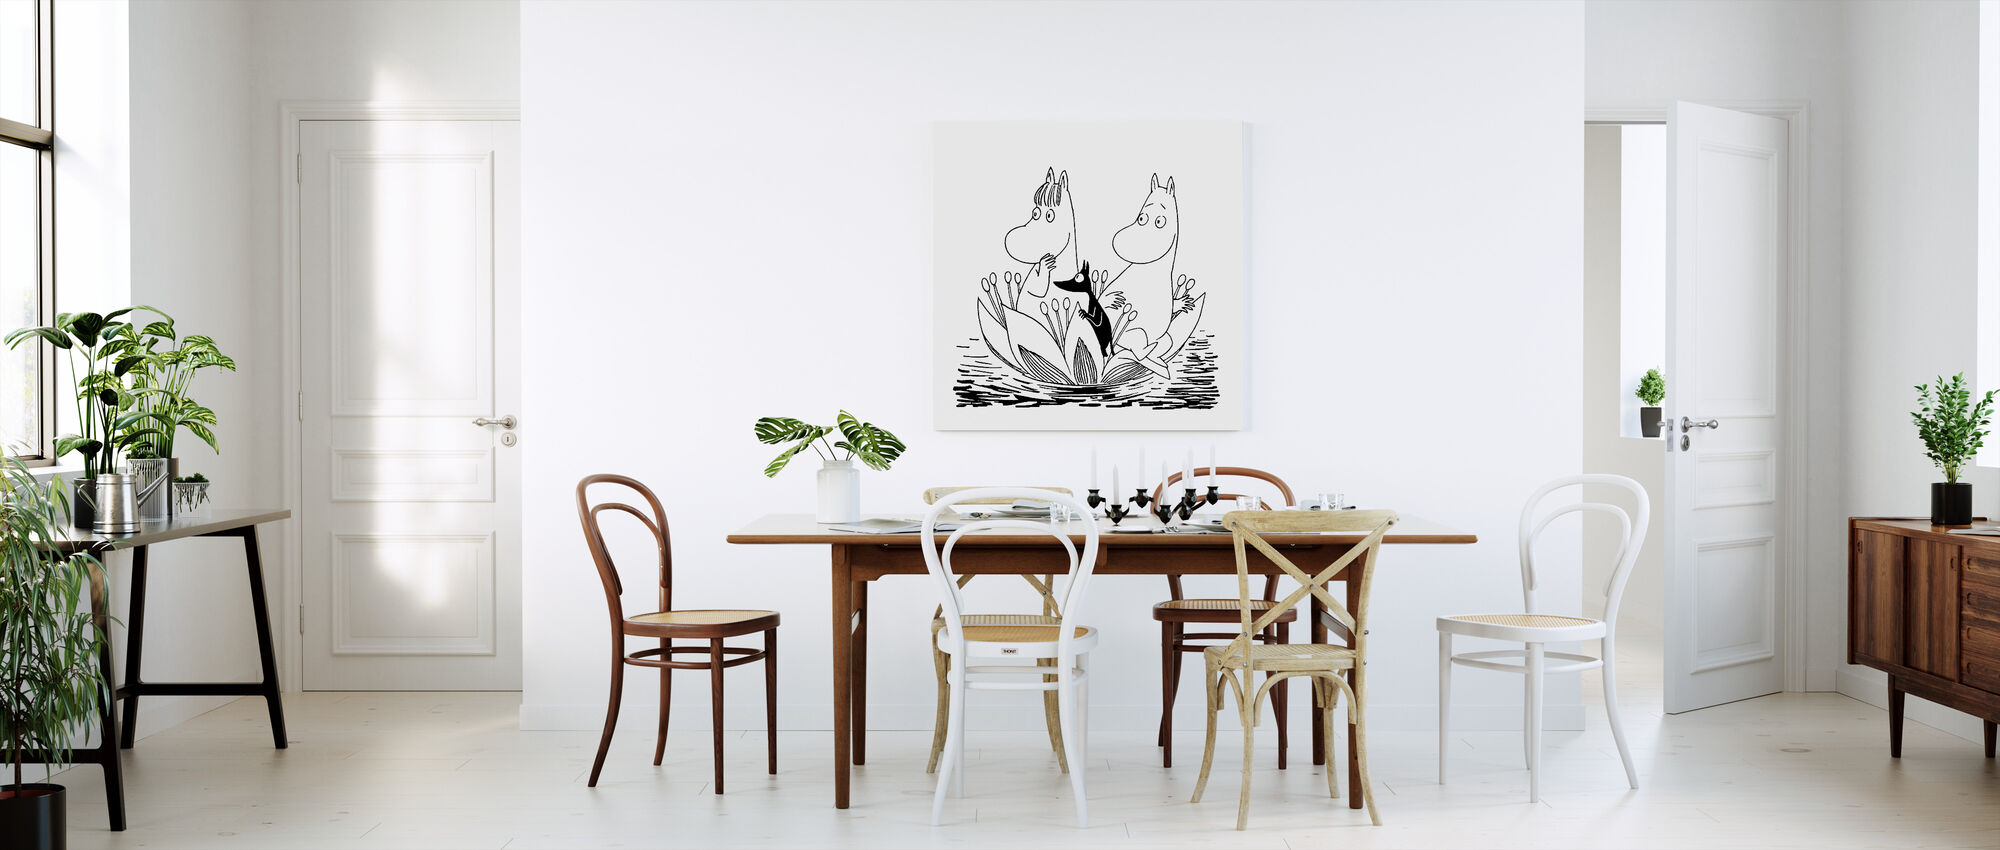 Moomin - Water Lily Boat - Canvas print - Kitchen